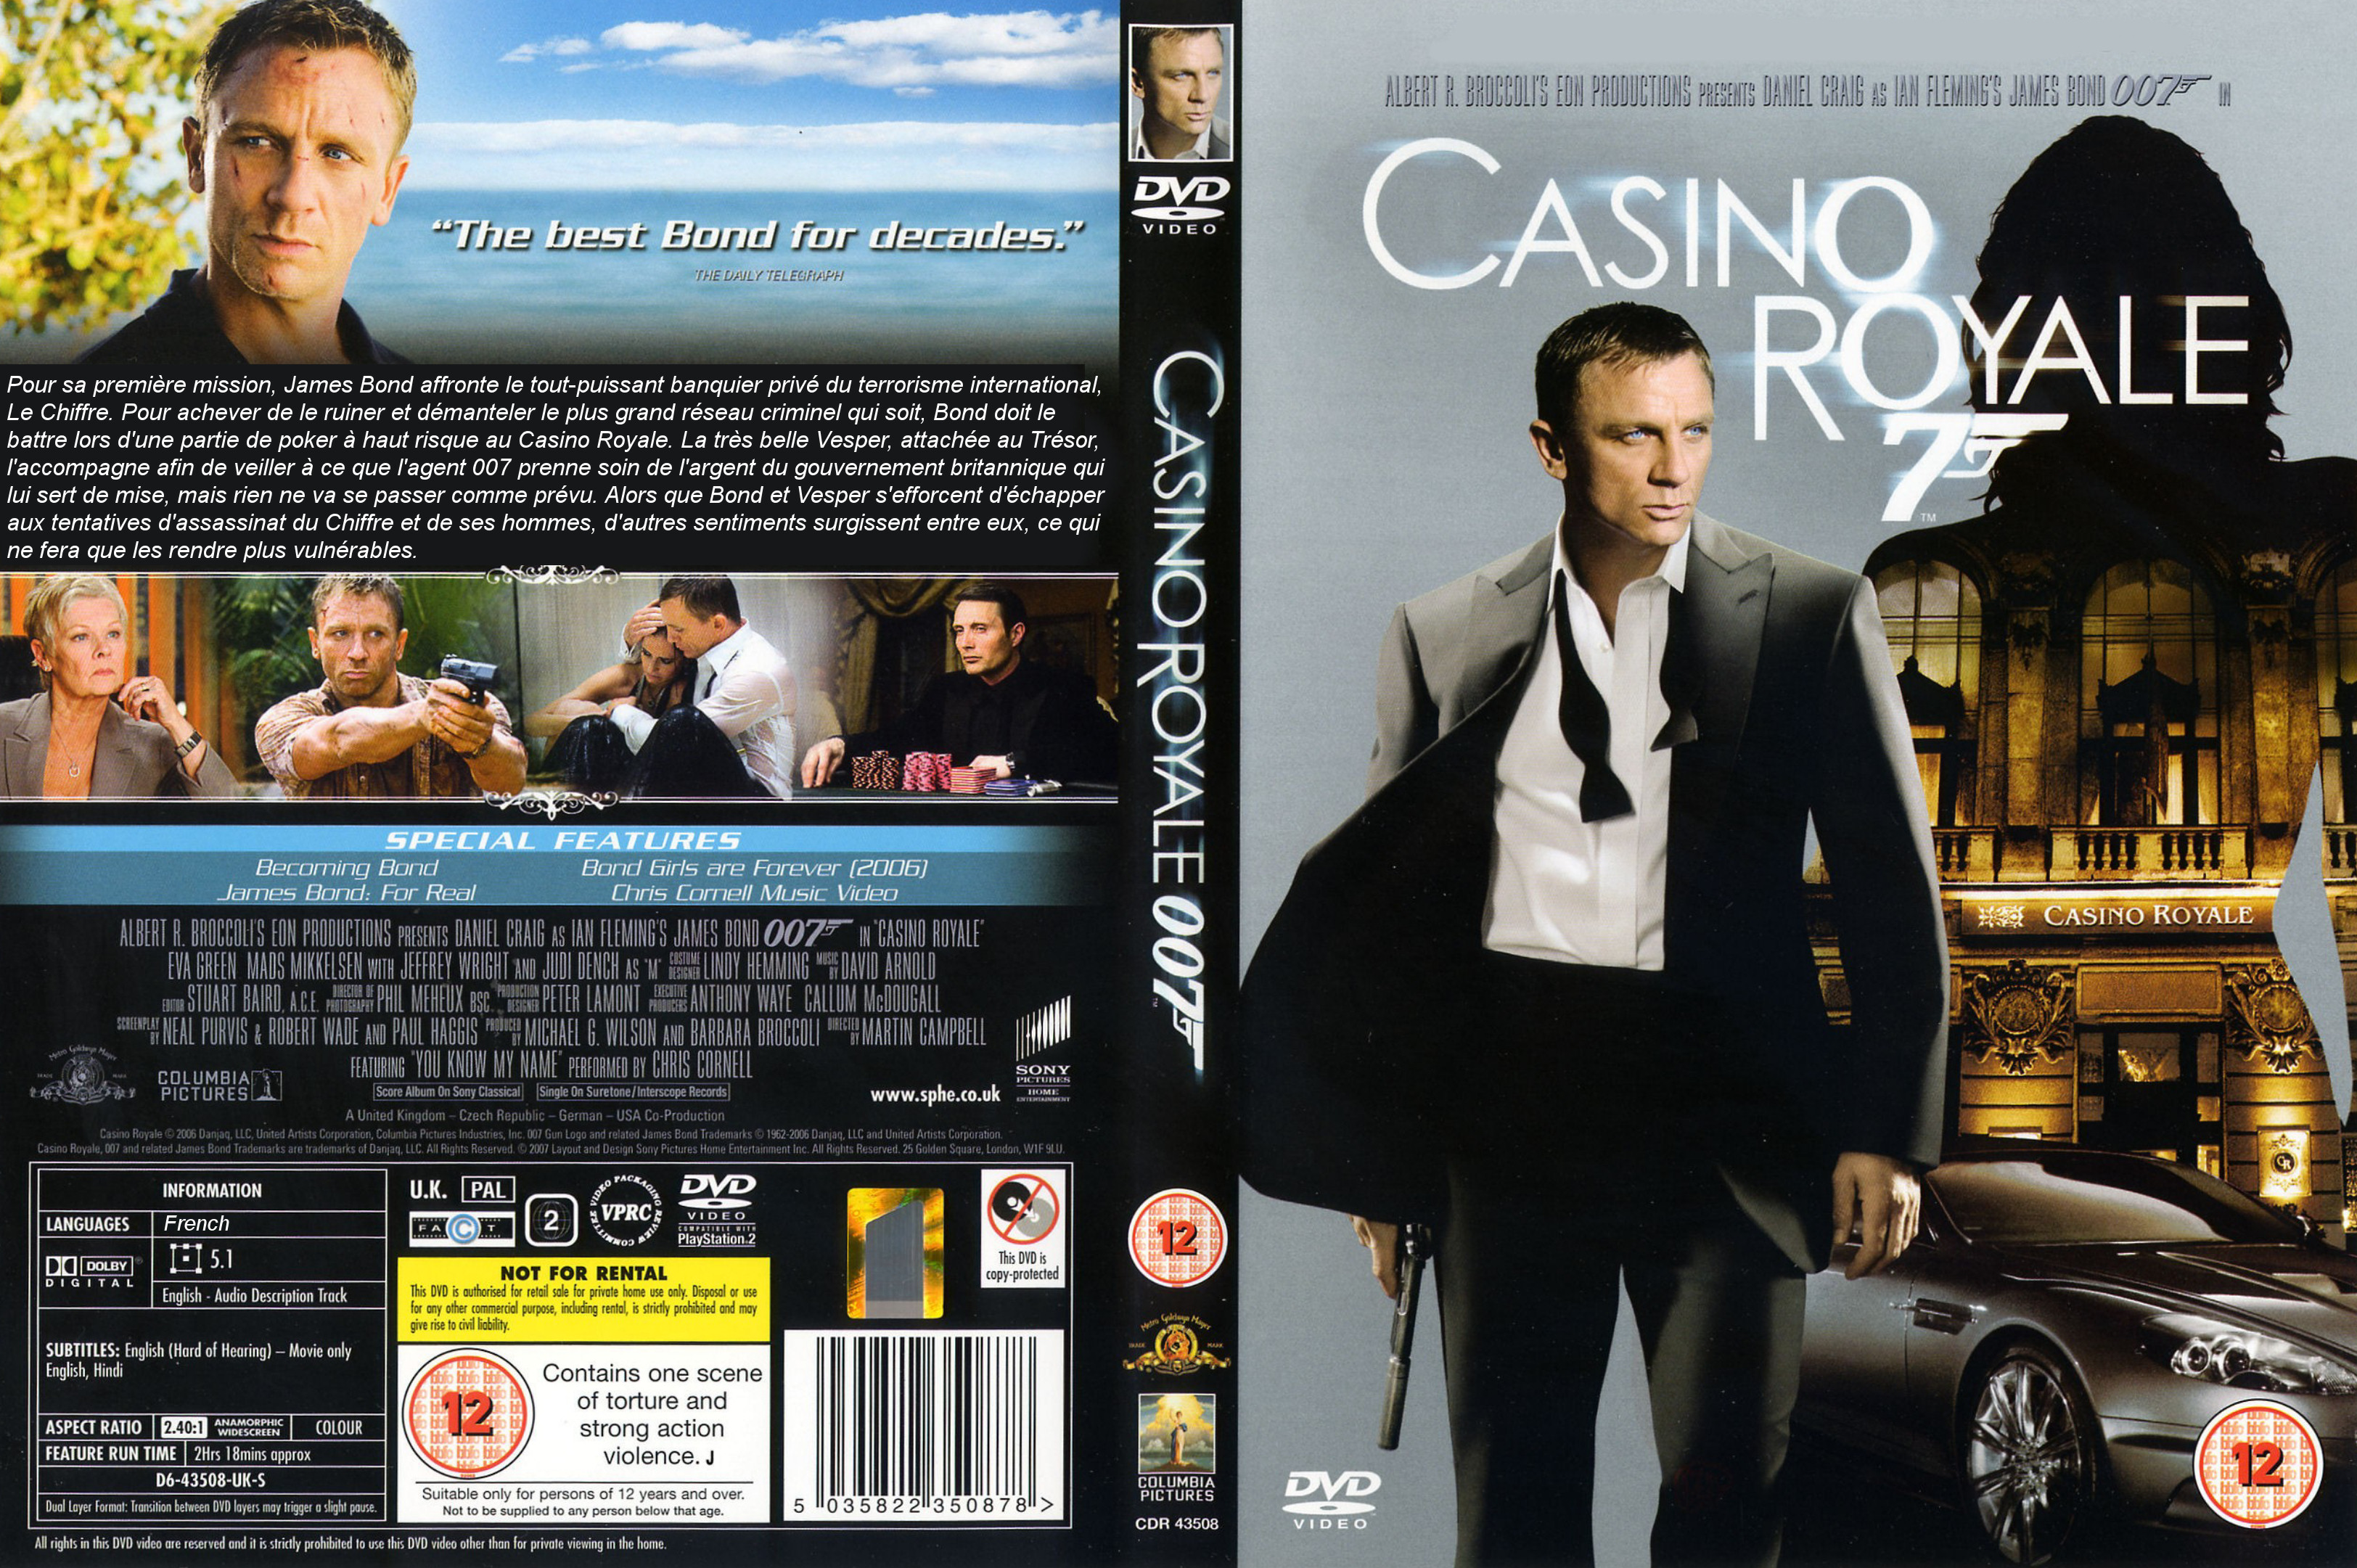 casino royale movie online free free casino spiele